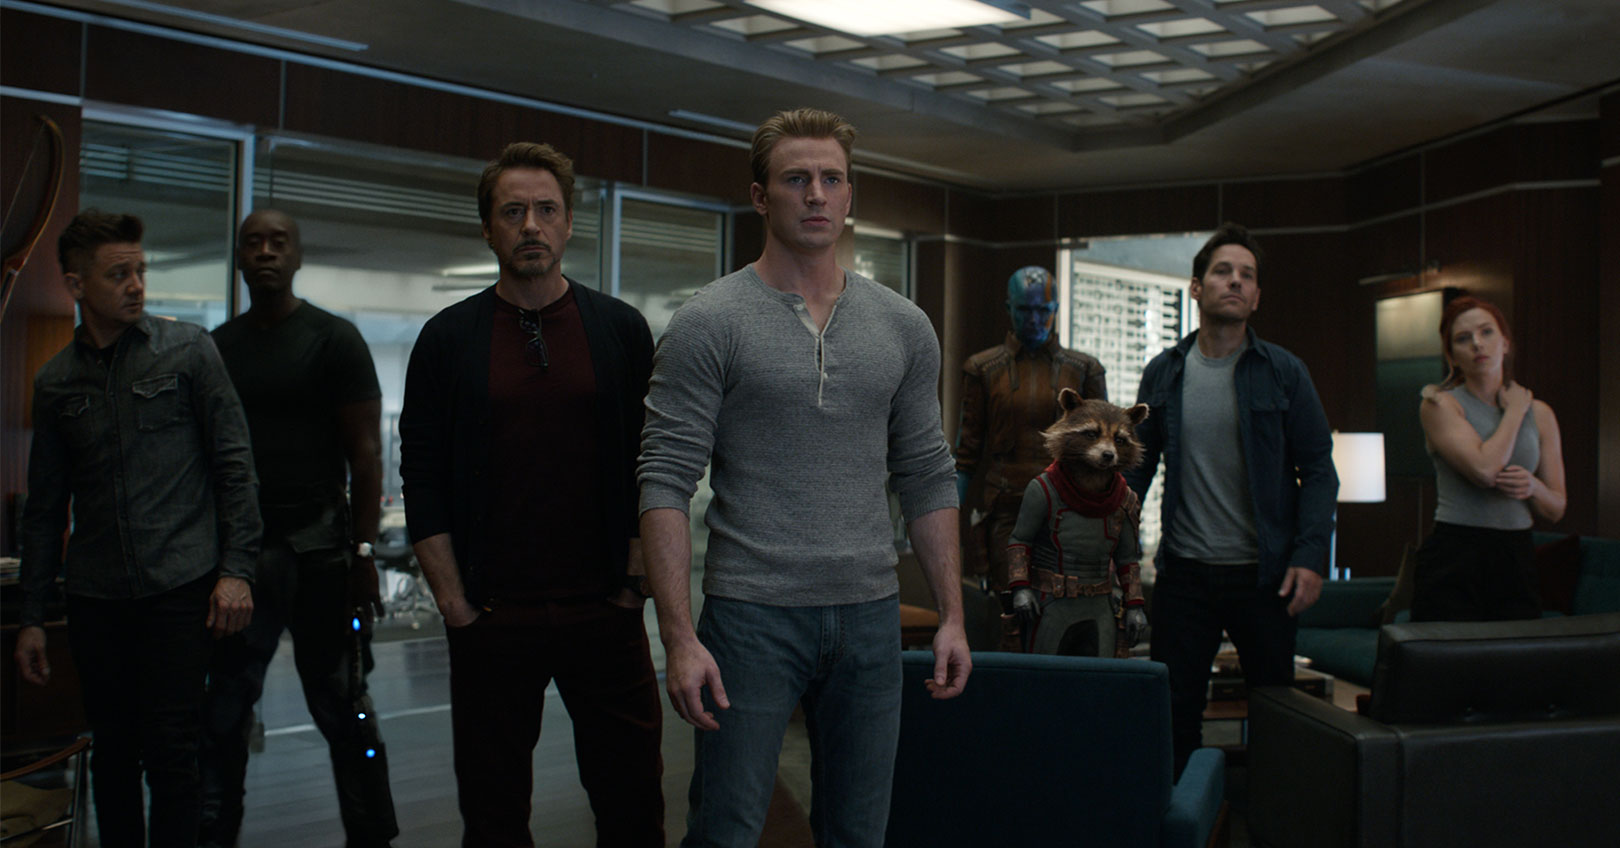 Avengers: Endgame - Jeremy Renner, Don Cheadle, Robert Downey Jr., Chris Evans, Karen GIllan, Bradley Cooper, Paul Rudd, and Scarlett Johansson